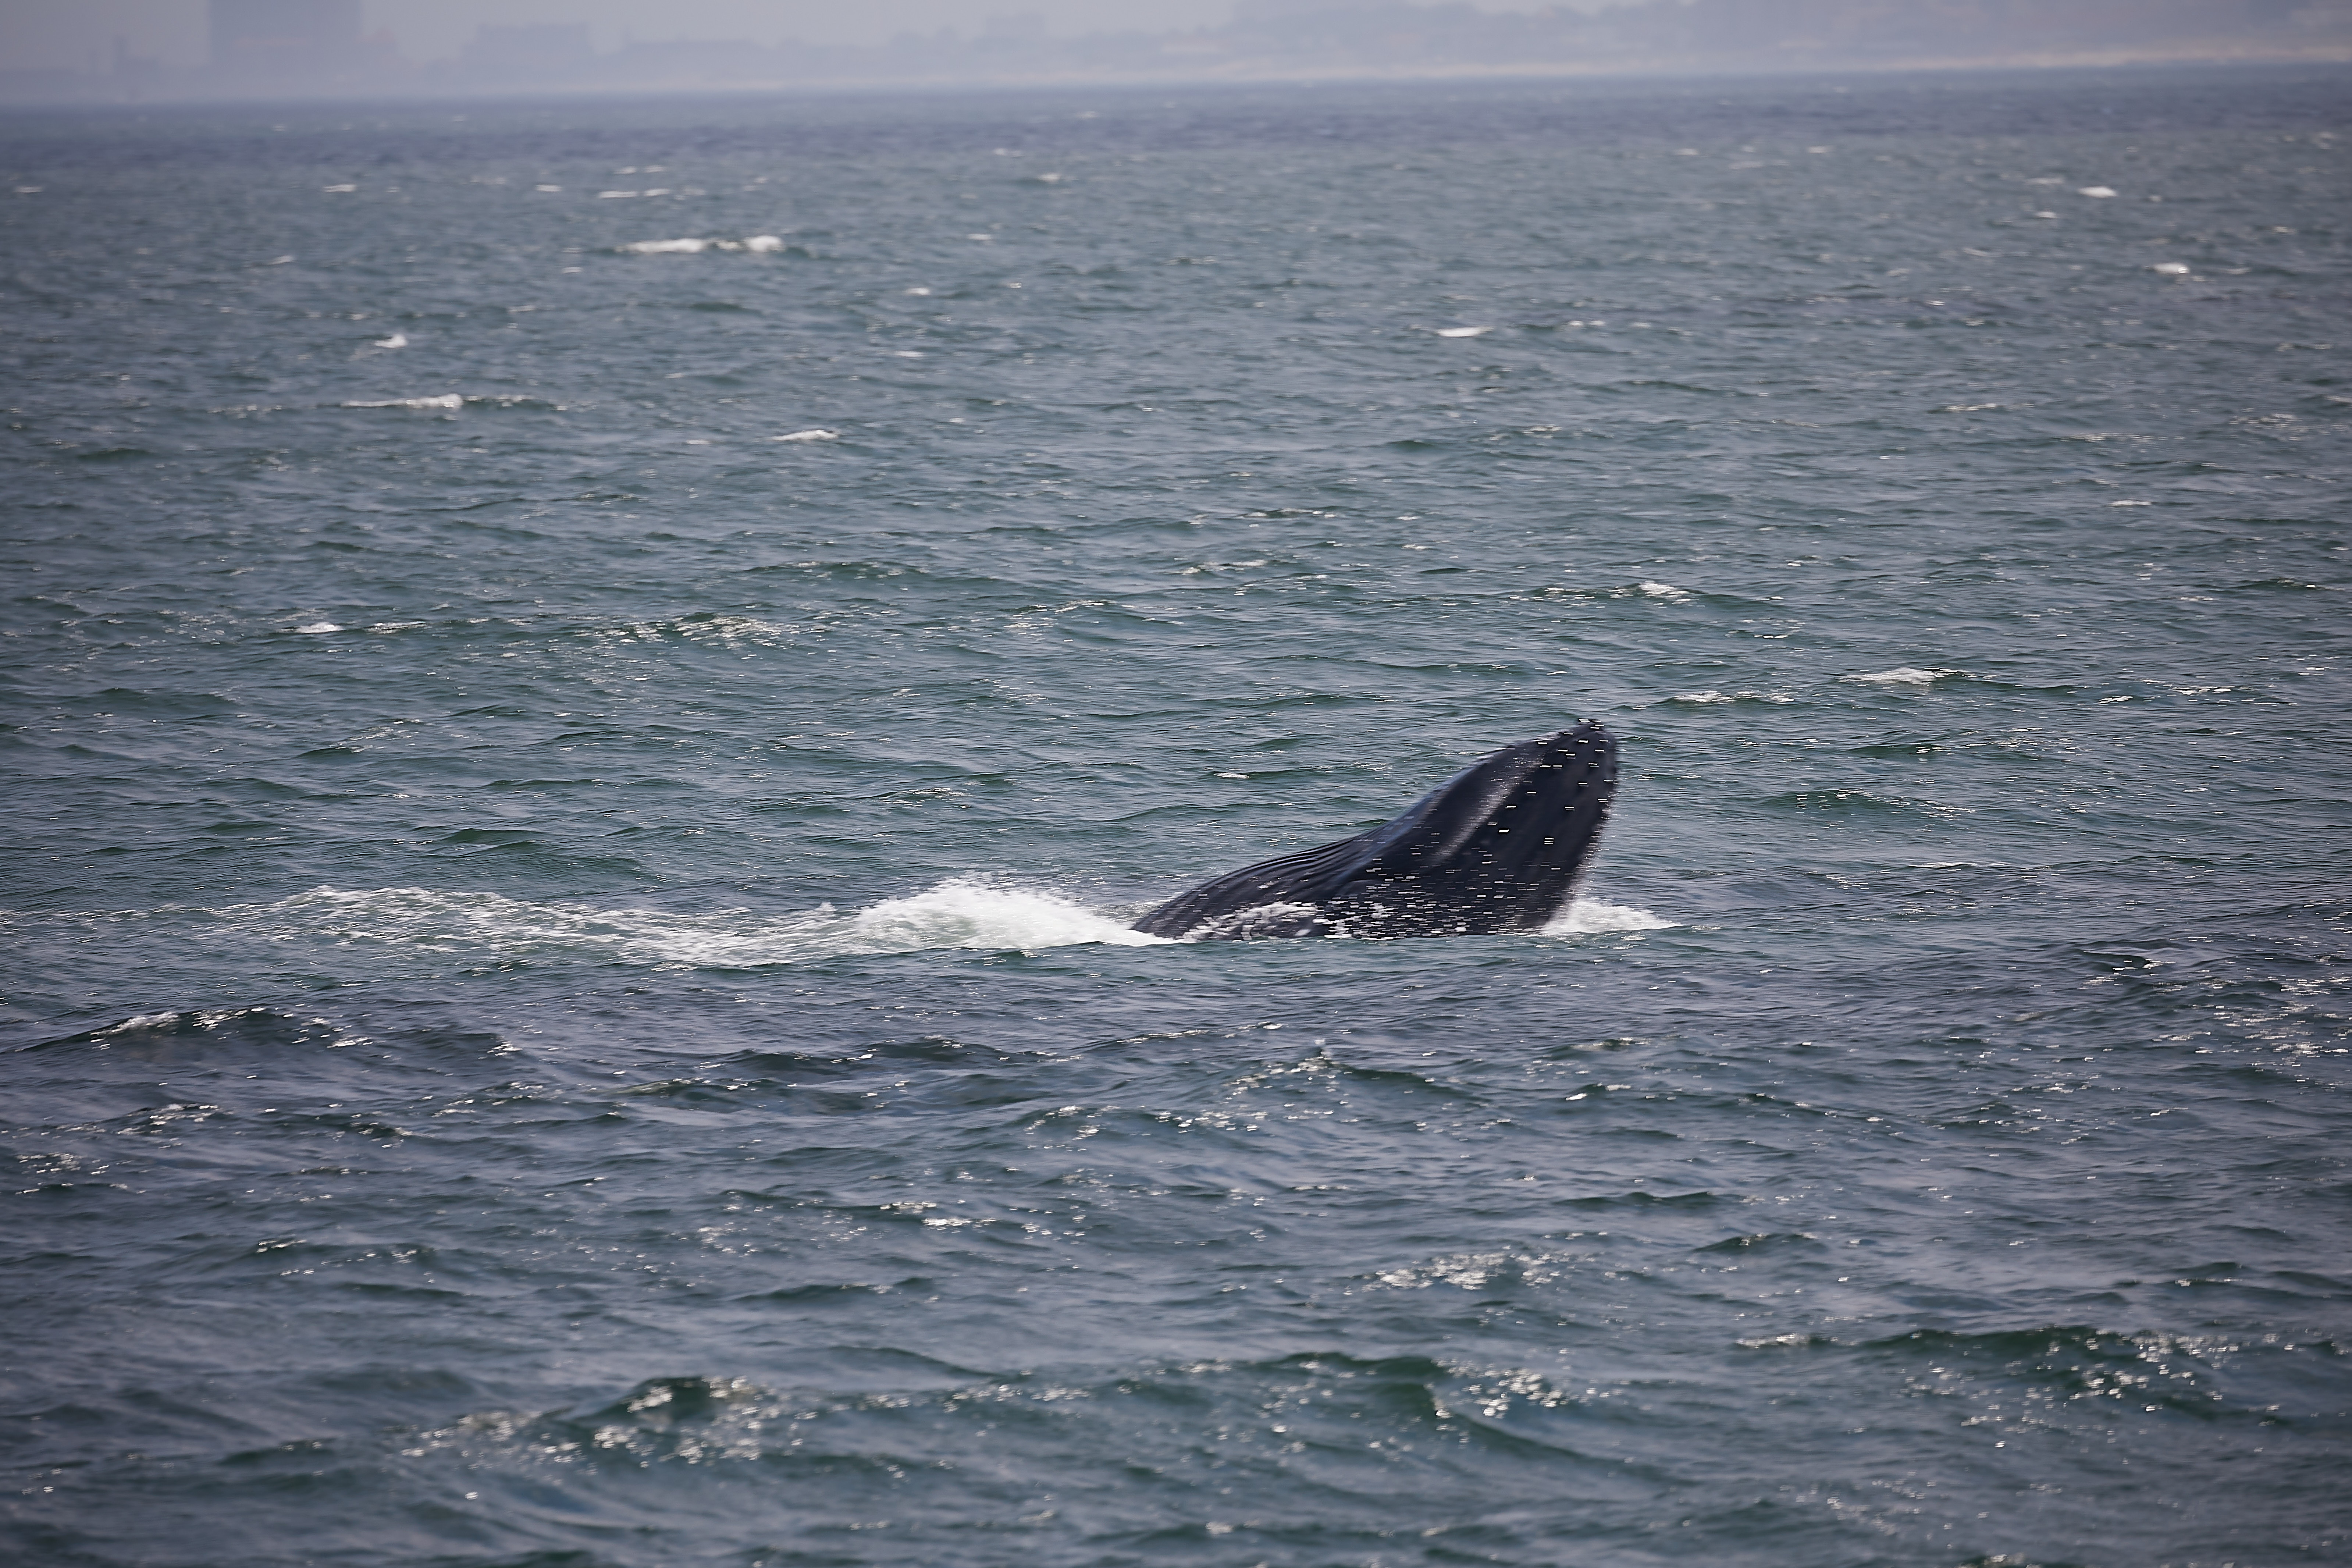 Juvenile humpback whale broaching the surface.